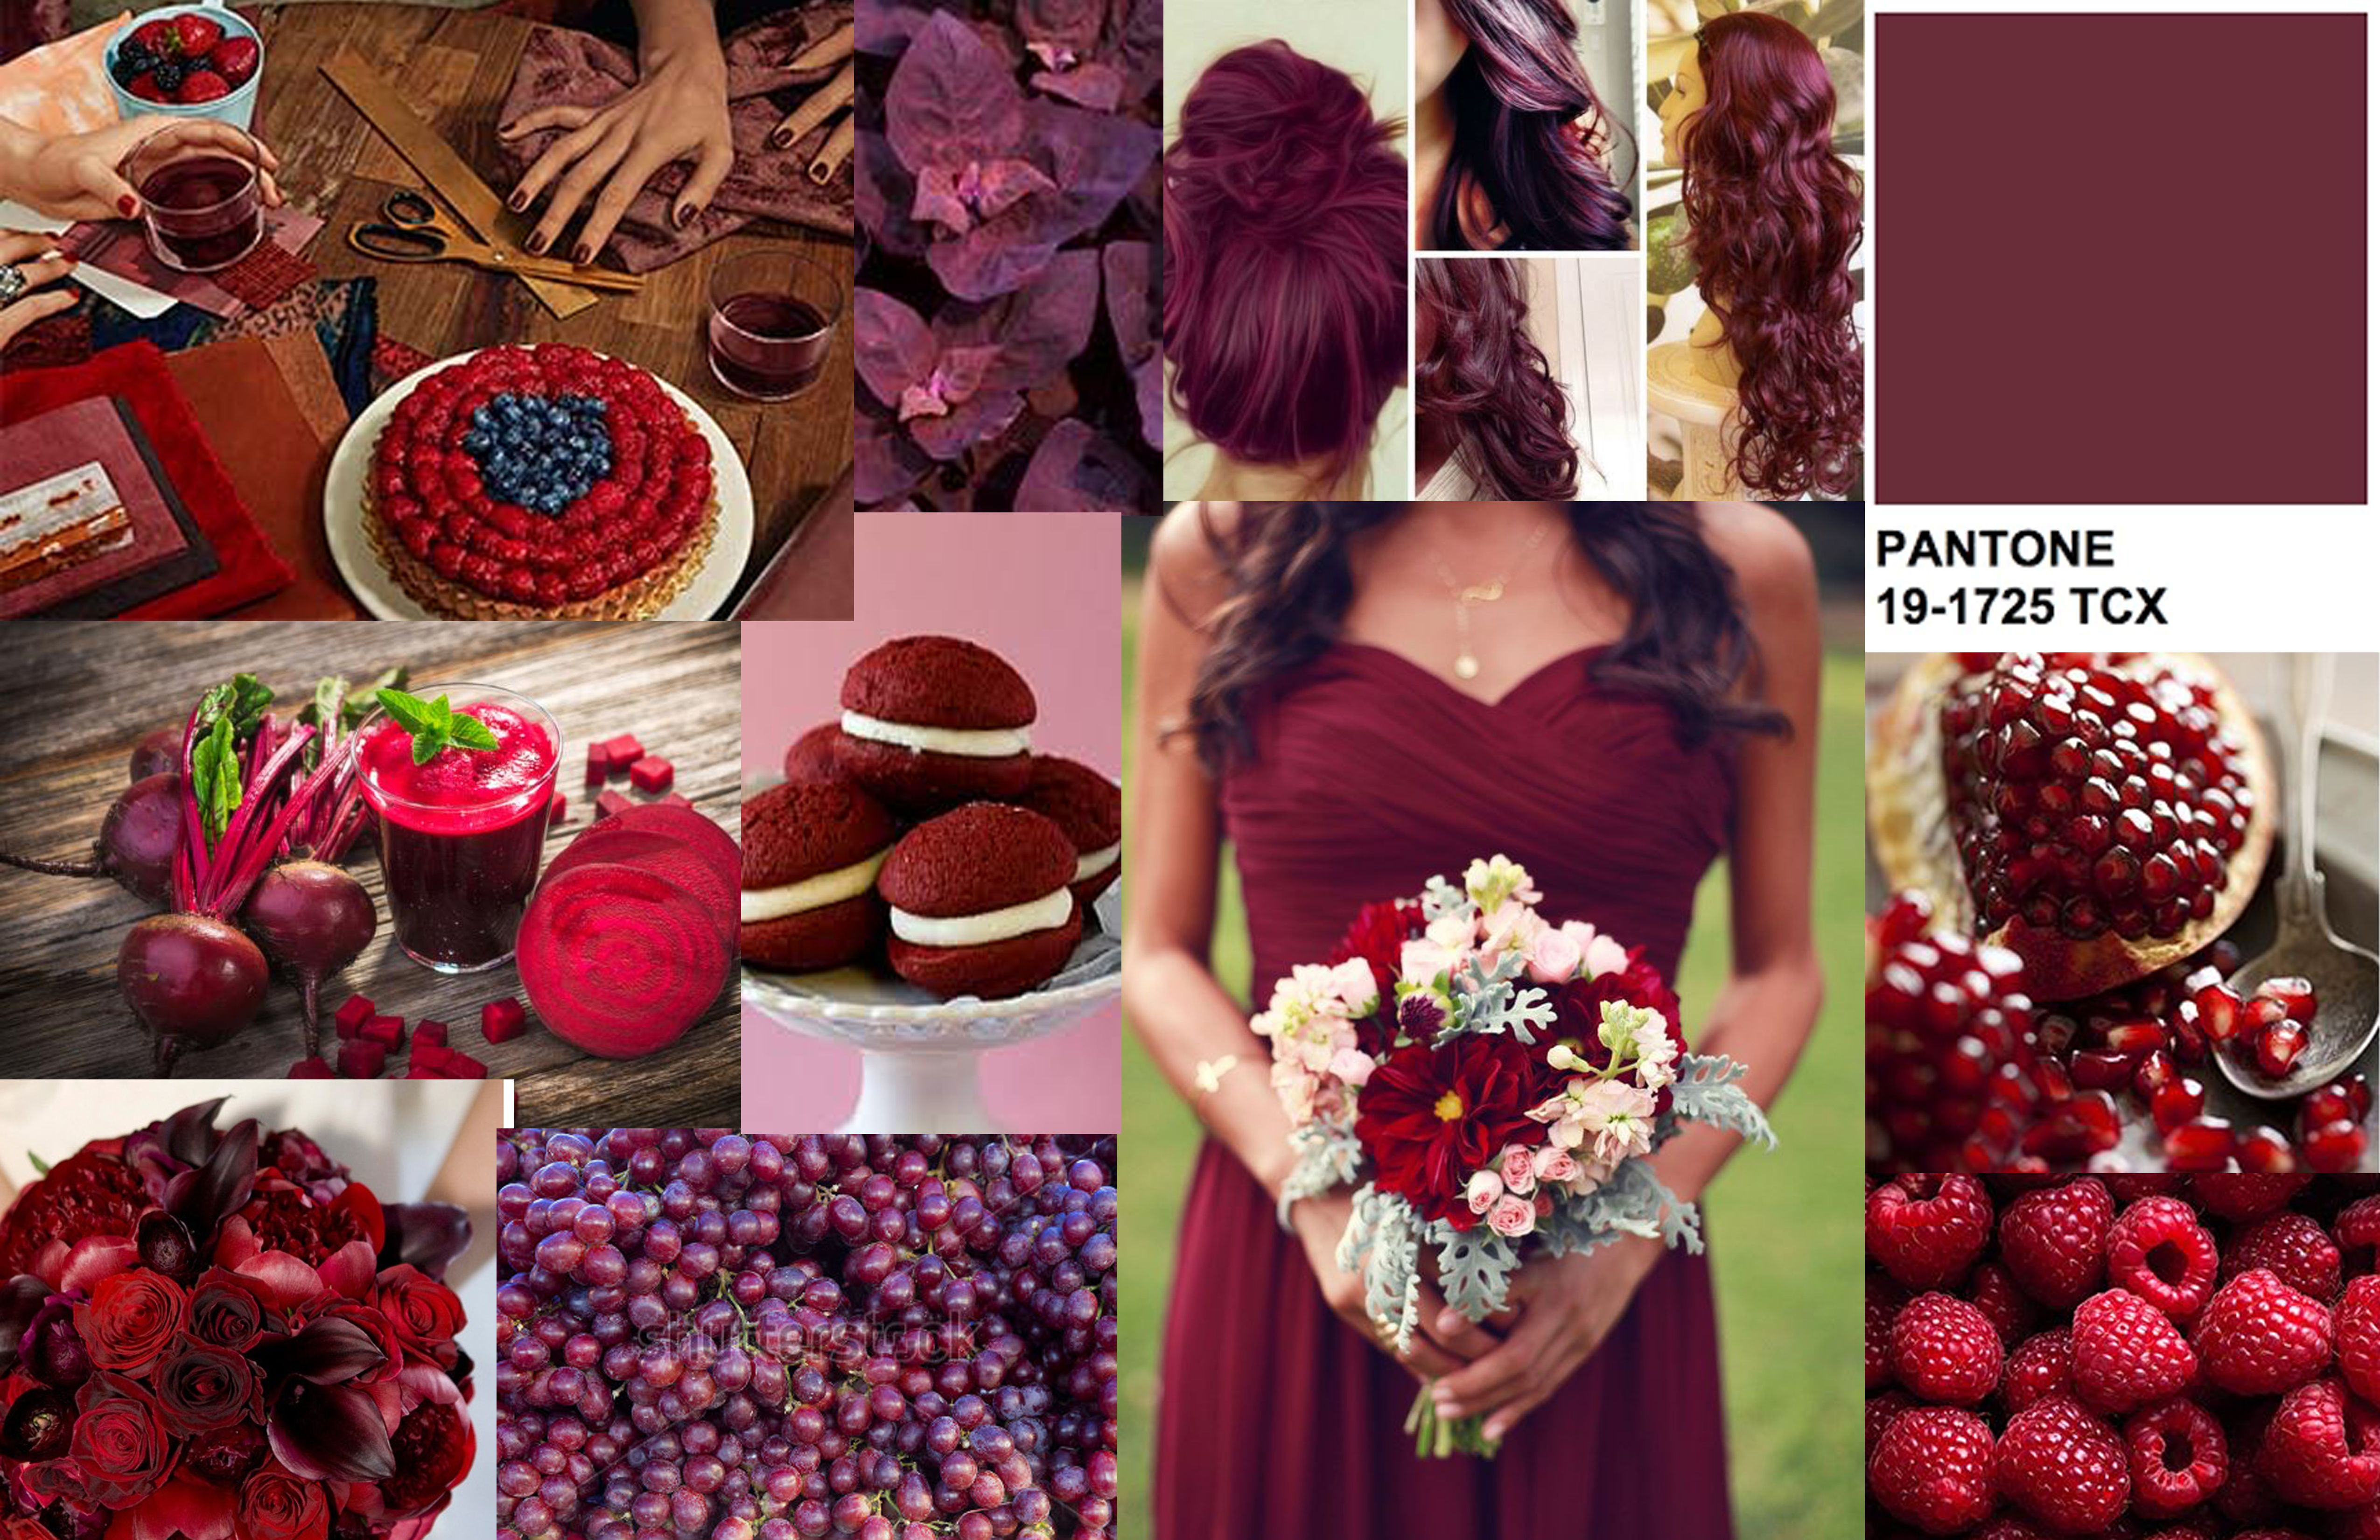 Tawny Port Pantone Burgundy Fashion Autumn Fashion 2018 Color Mixing